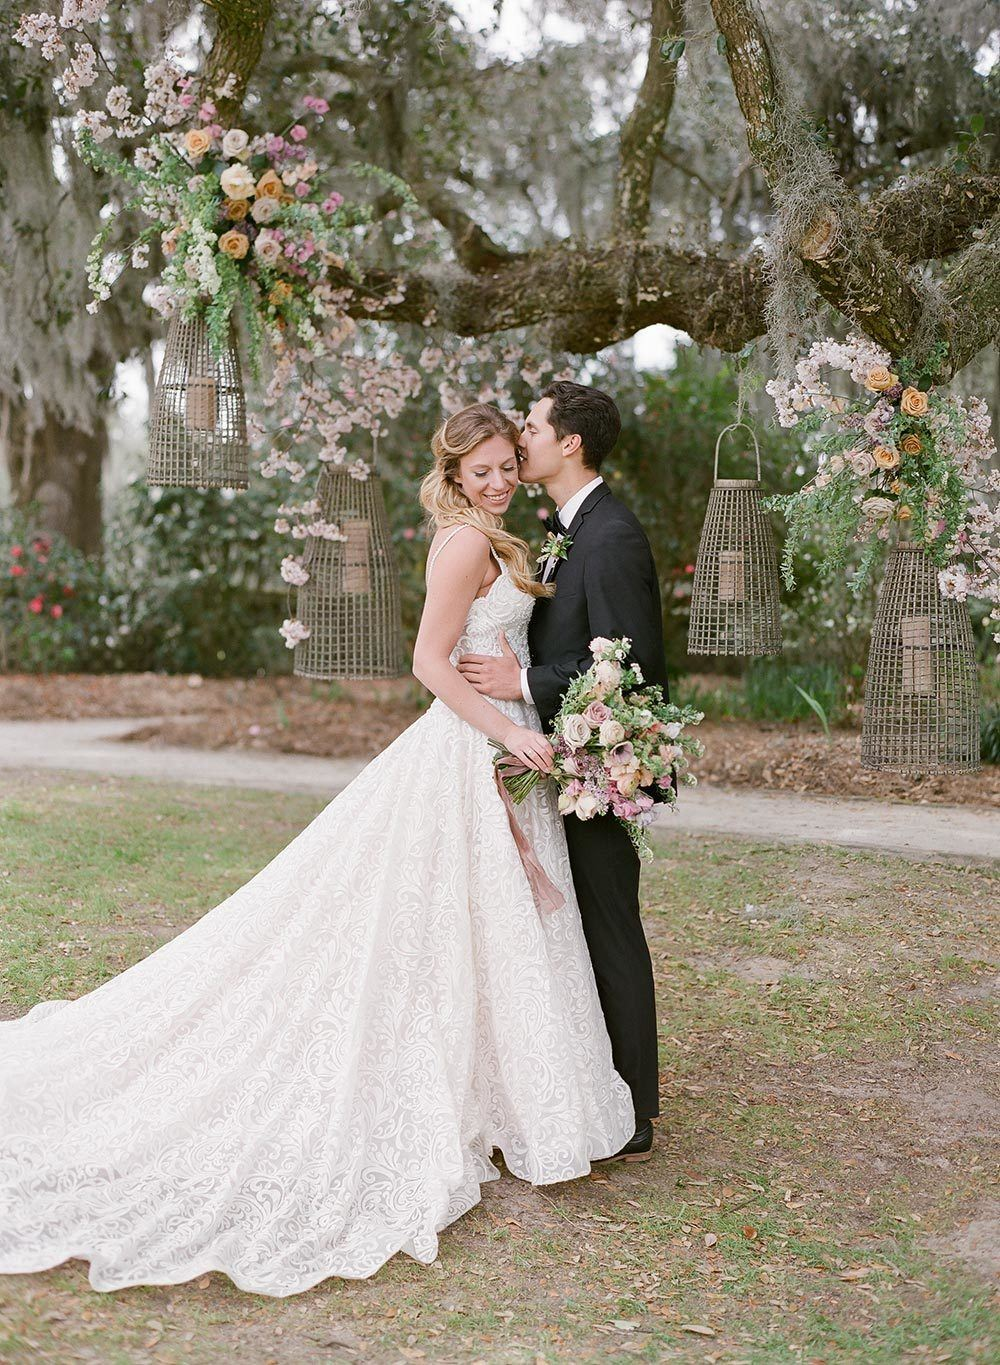 embroidered wedding dress with sweetheart neckline and black groom tux with live oak wedding backdrop and floral lanterns